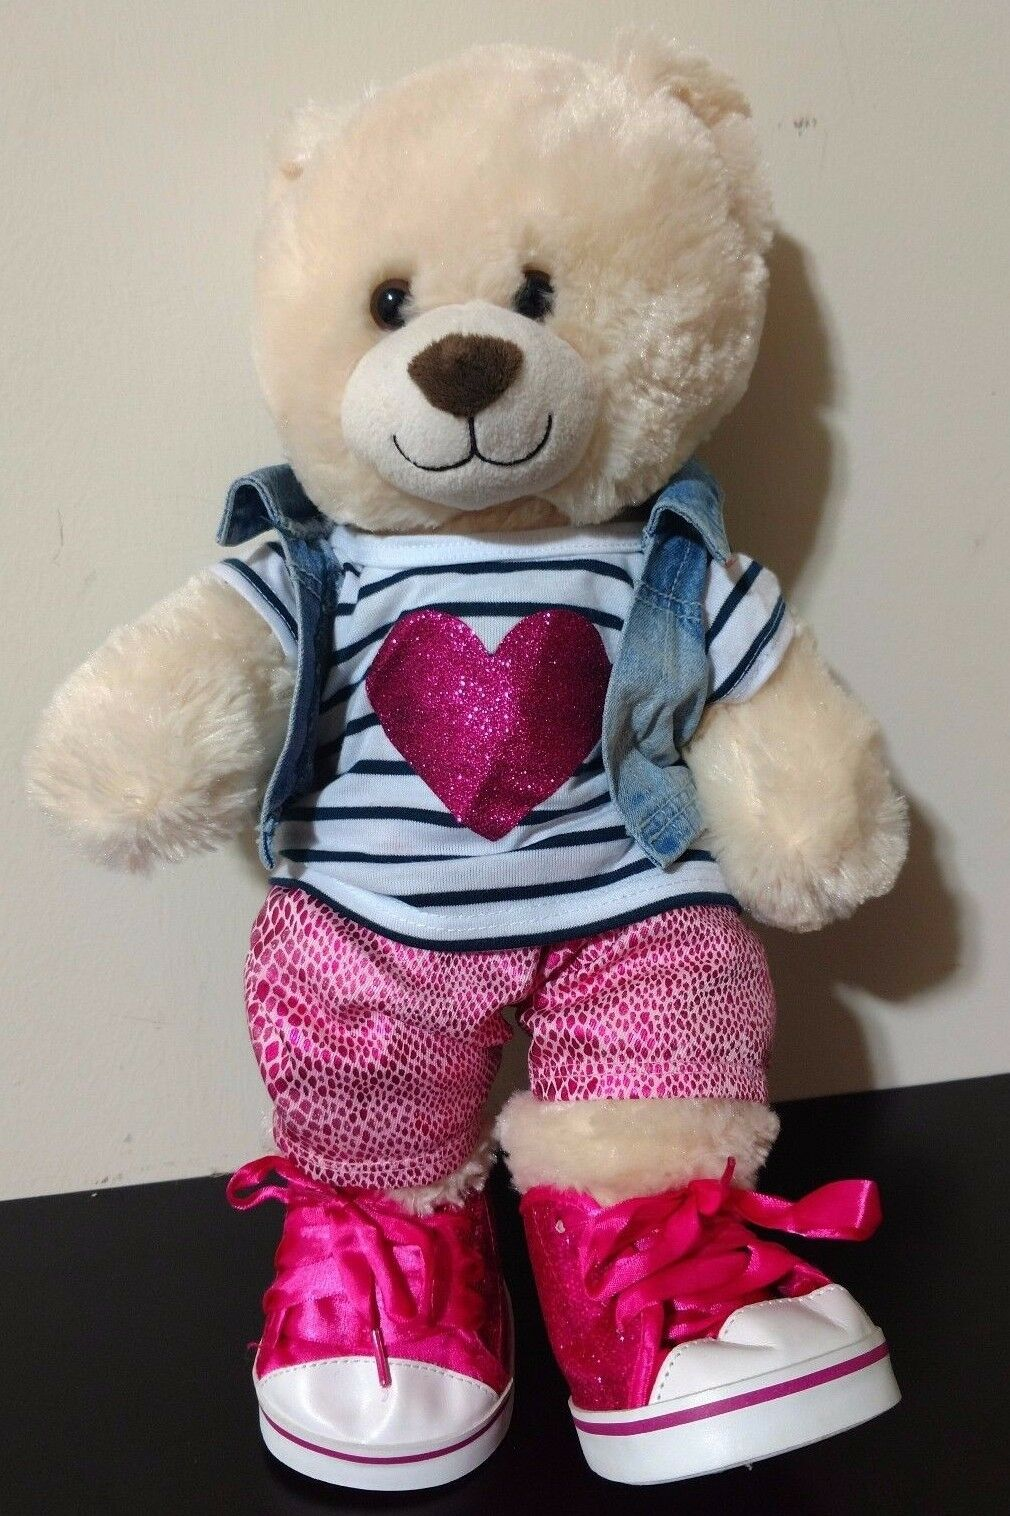 BAB Build a Bear 15  Lil' Almond Cub Plush Toy w Outfit Jean Vest & High Tops